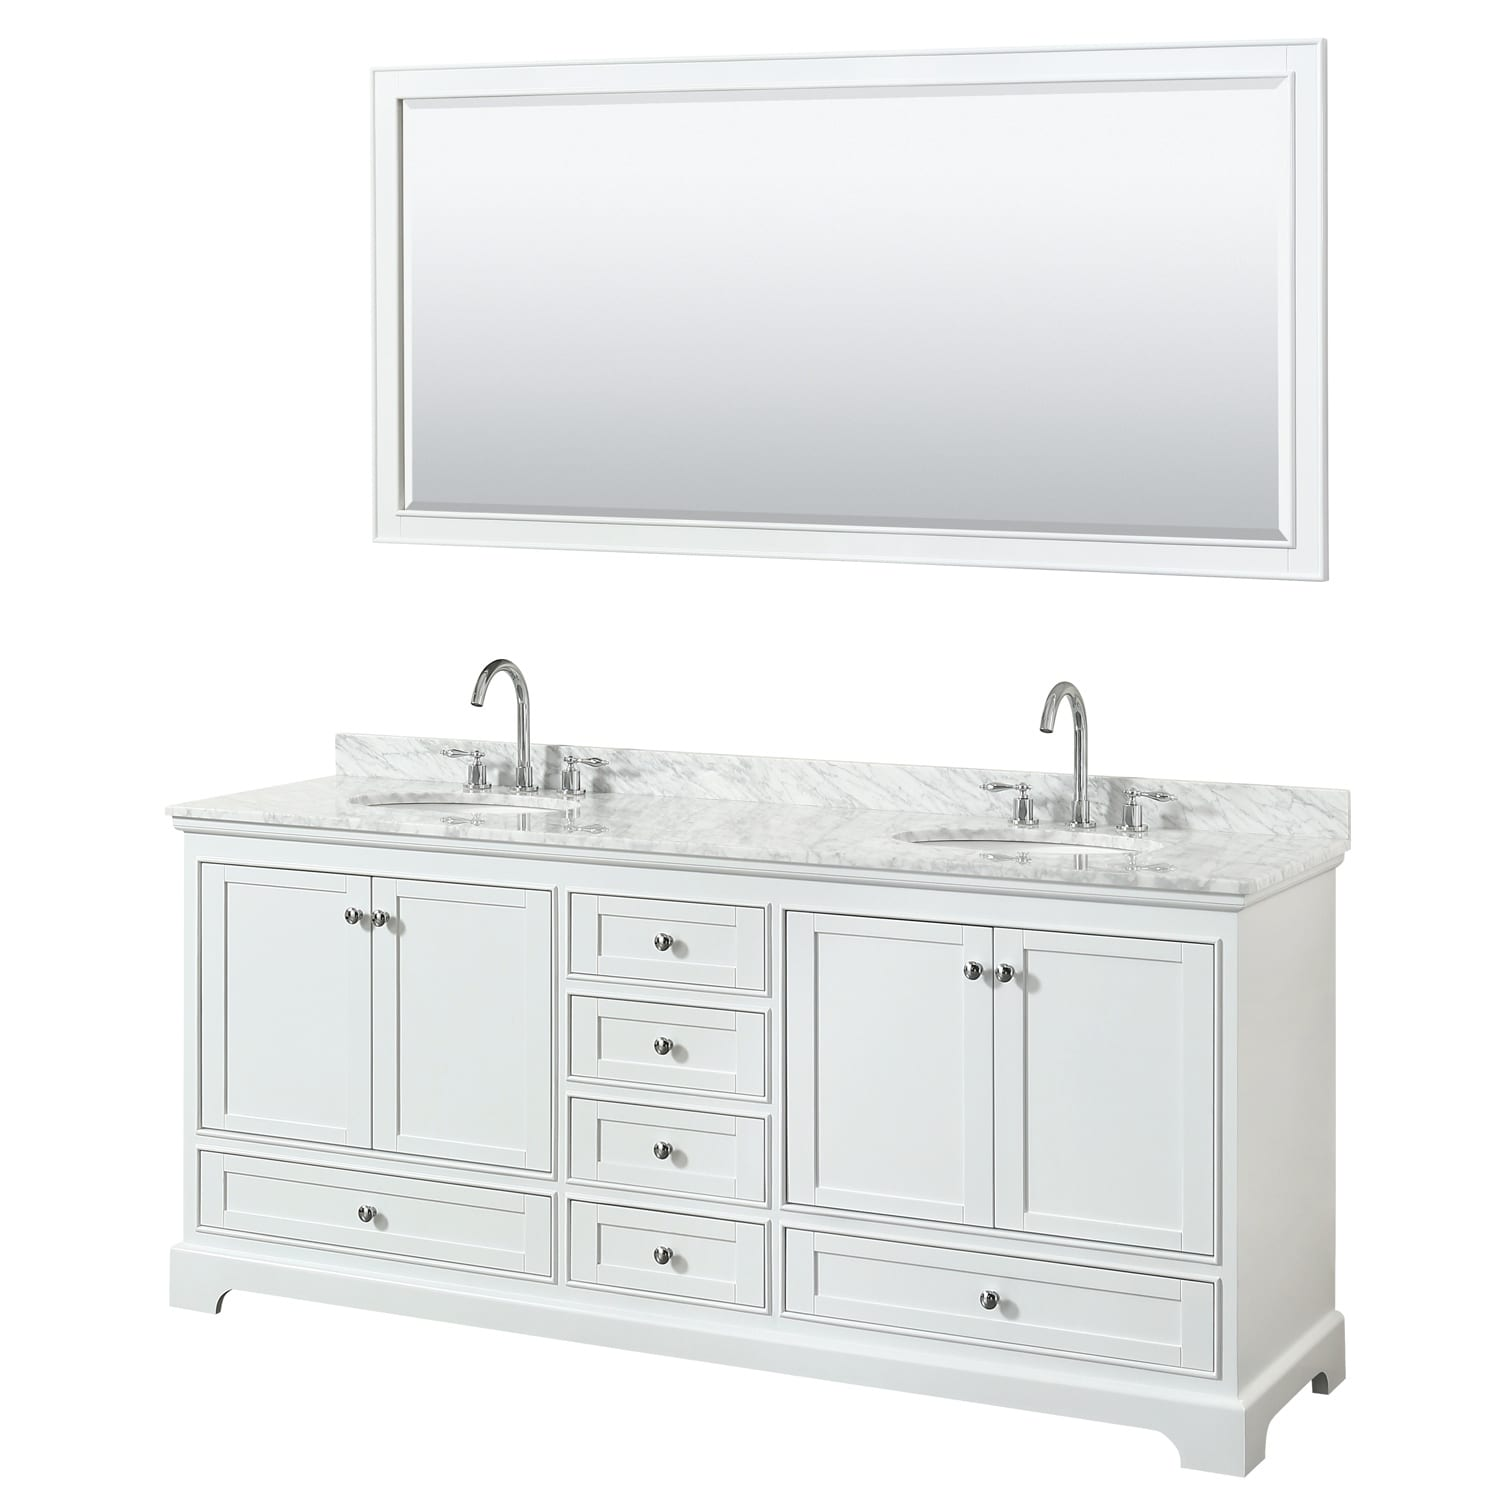 Deborah 80 Inch White Double Vanity Oval Sinks 70 Inch Mirror